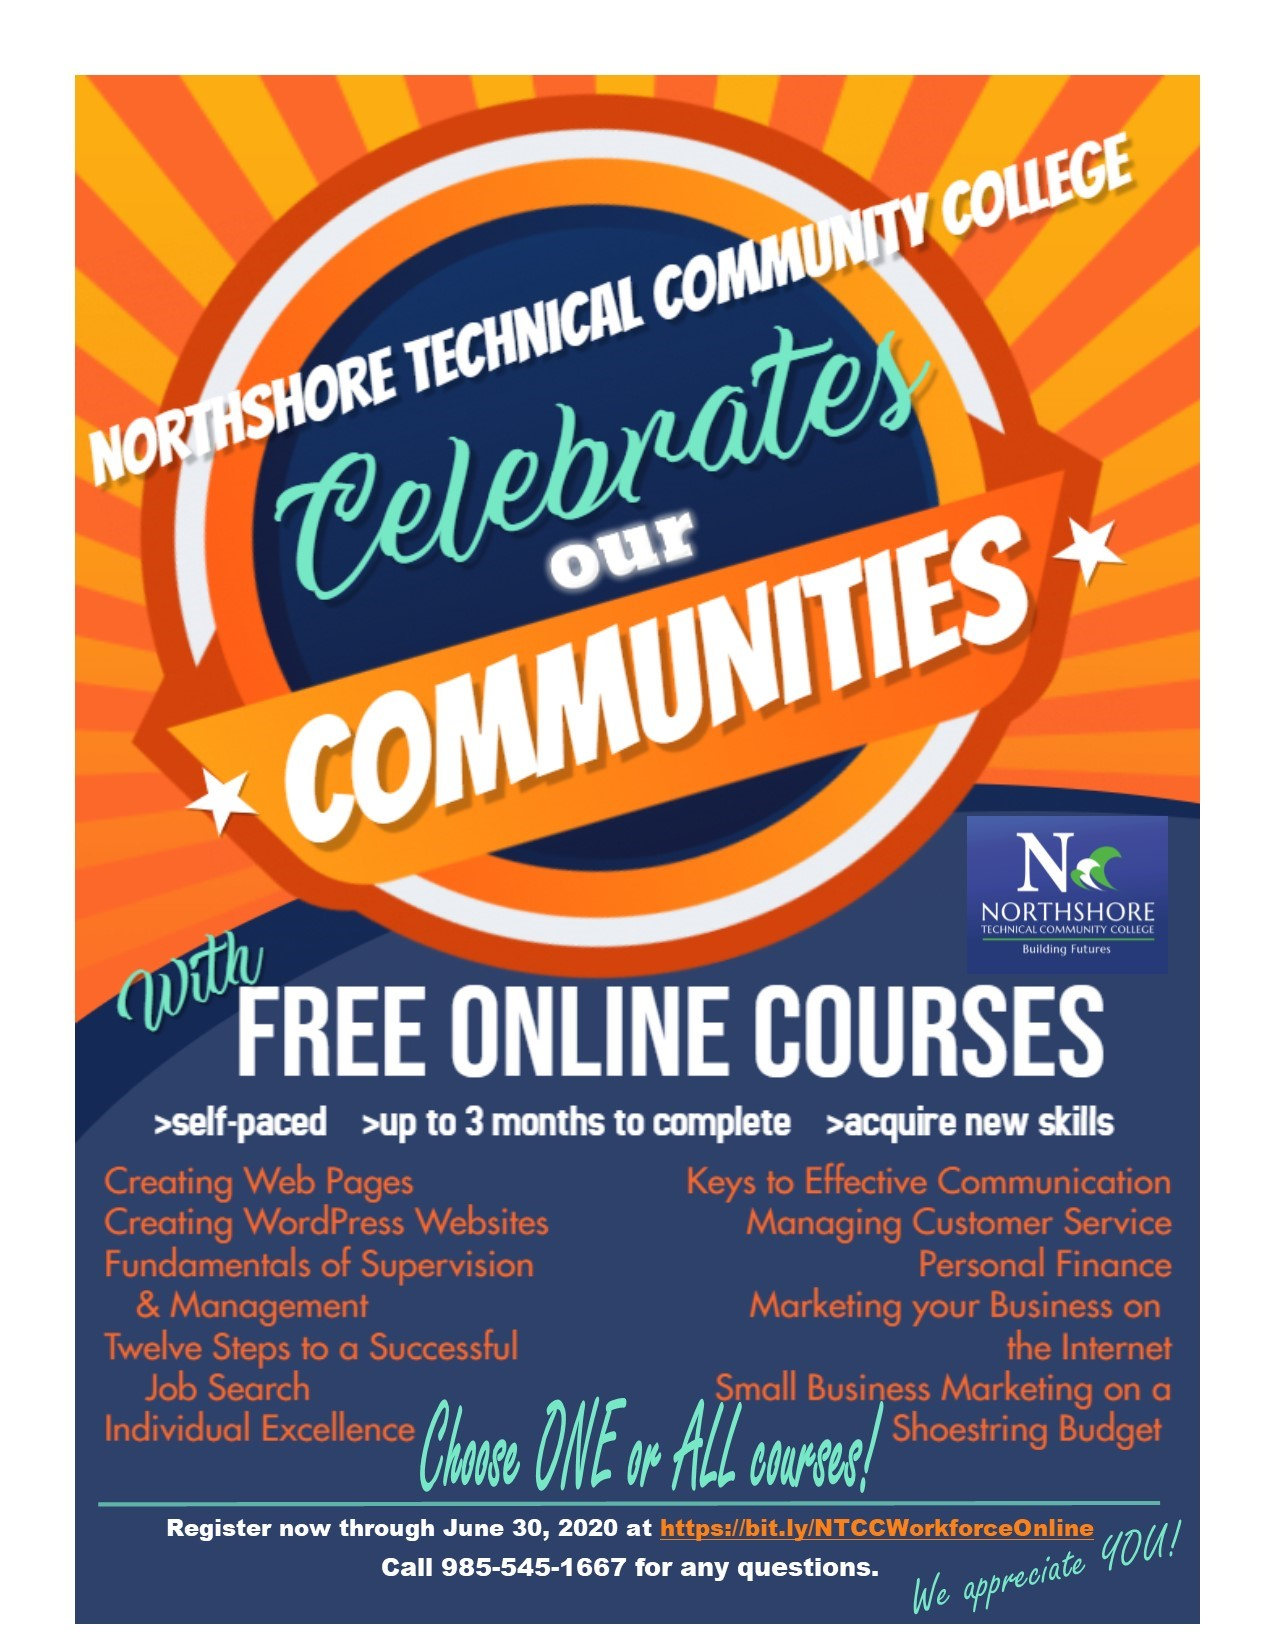 Sign up for up to 10 free online courses by June 30th! Complete at your own pace within 3 months